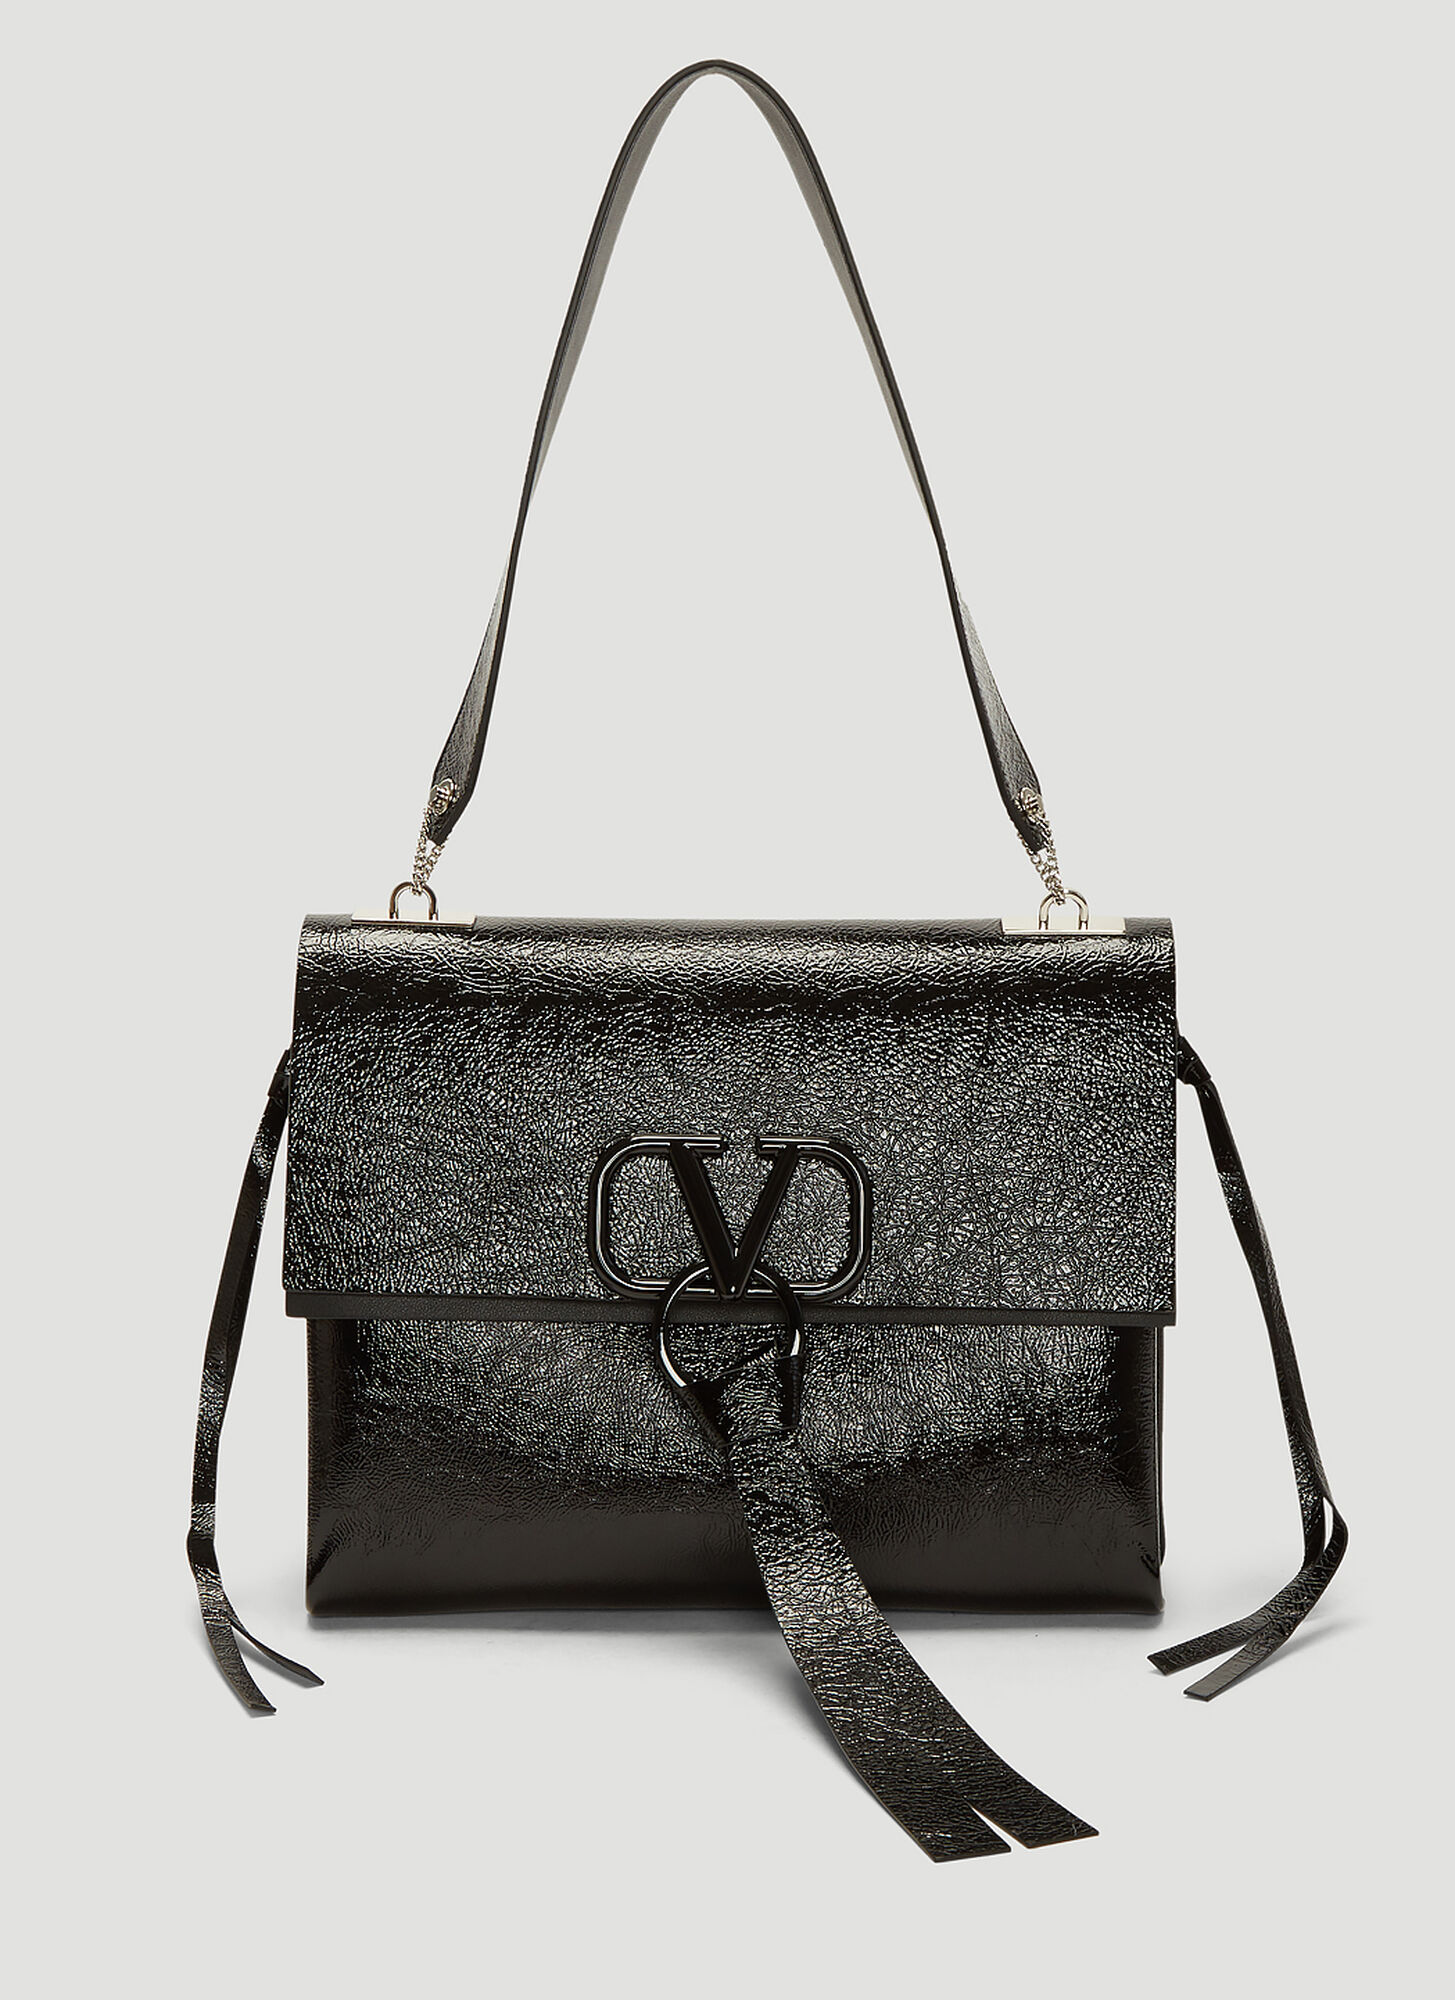 Valentino Logo Clasp Medium Shoulder Bag in Black